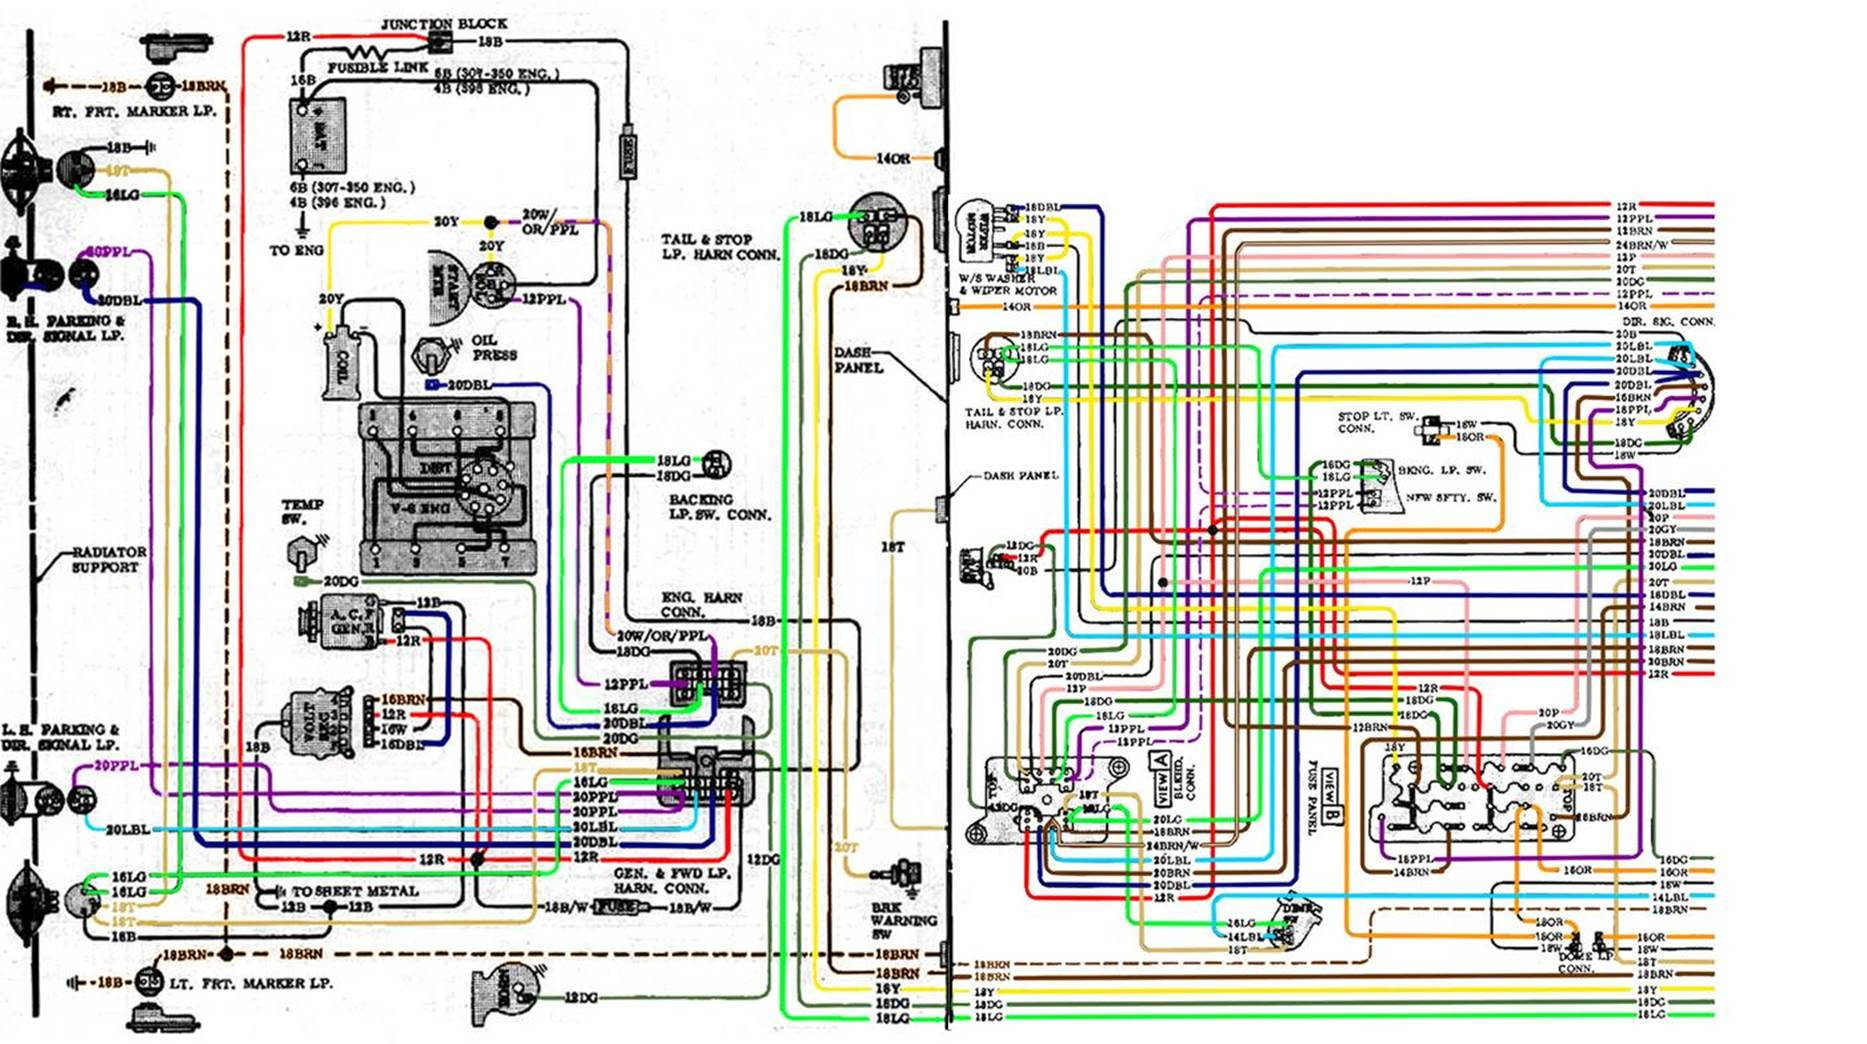 image002 c10 wiring harness 71 c10 wiring harness \u2022 wiring diagram database 1985 Chevy Truck Wiring Harness at alyssarenee.co